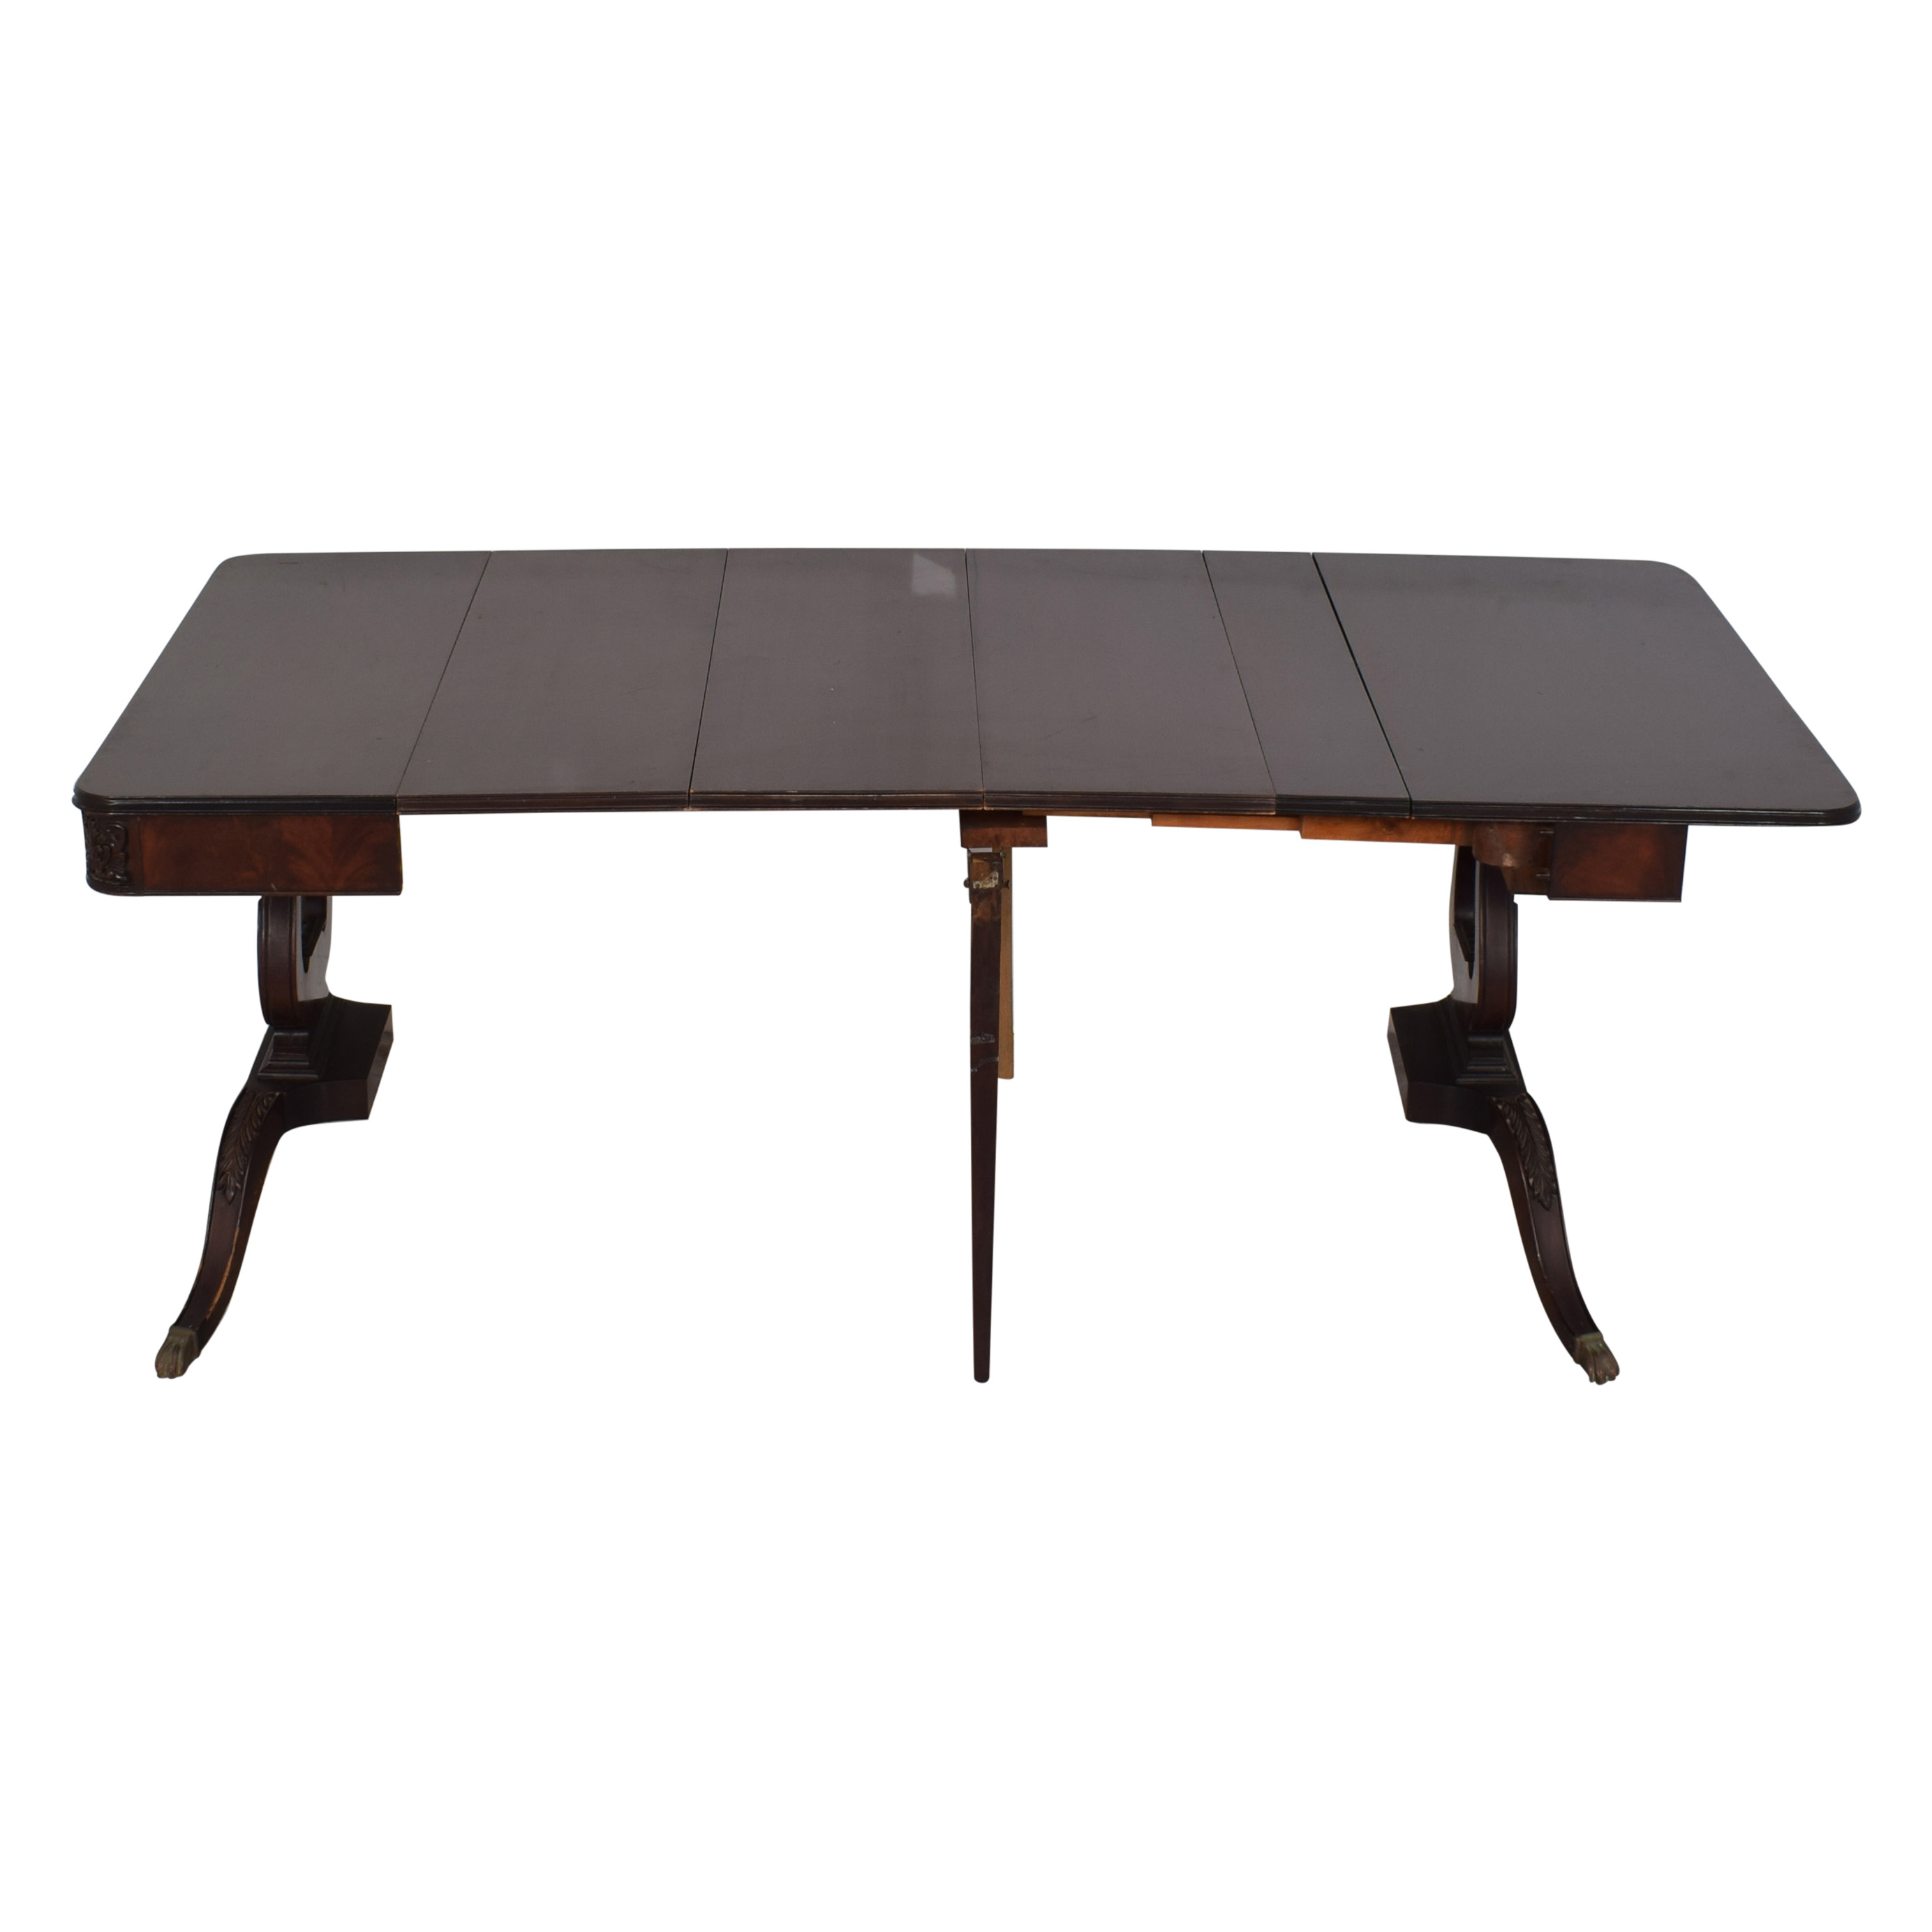 Watertown Table Company Slide Table discount